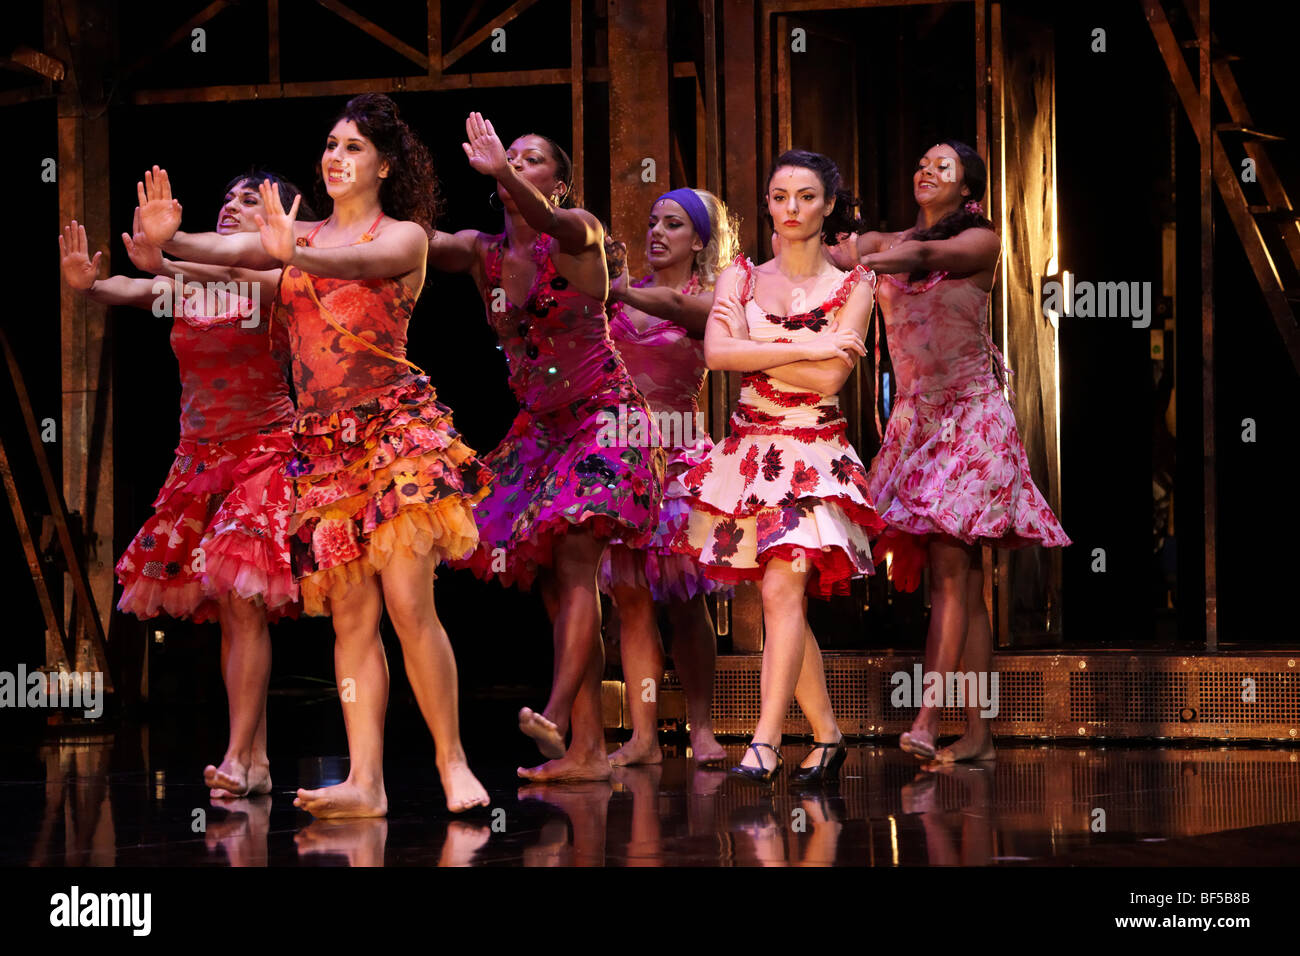 Musical Theater Stock Photos & Musical Theater Stock Images